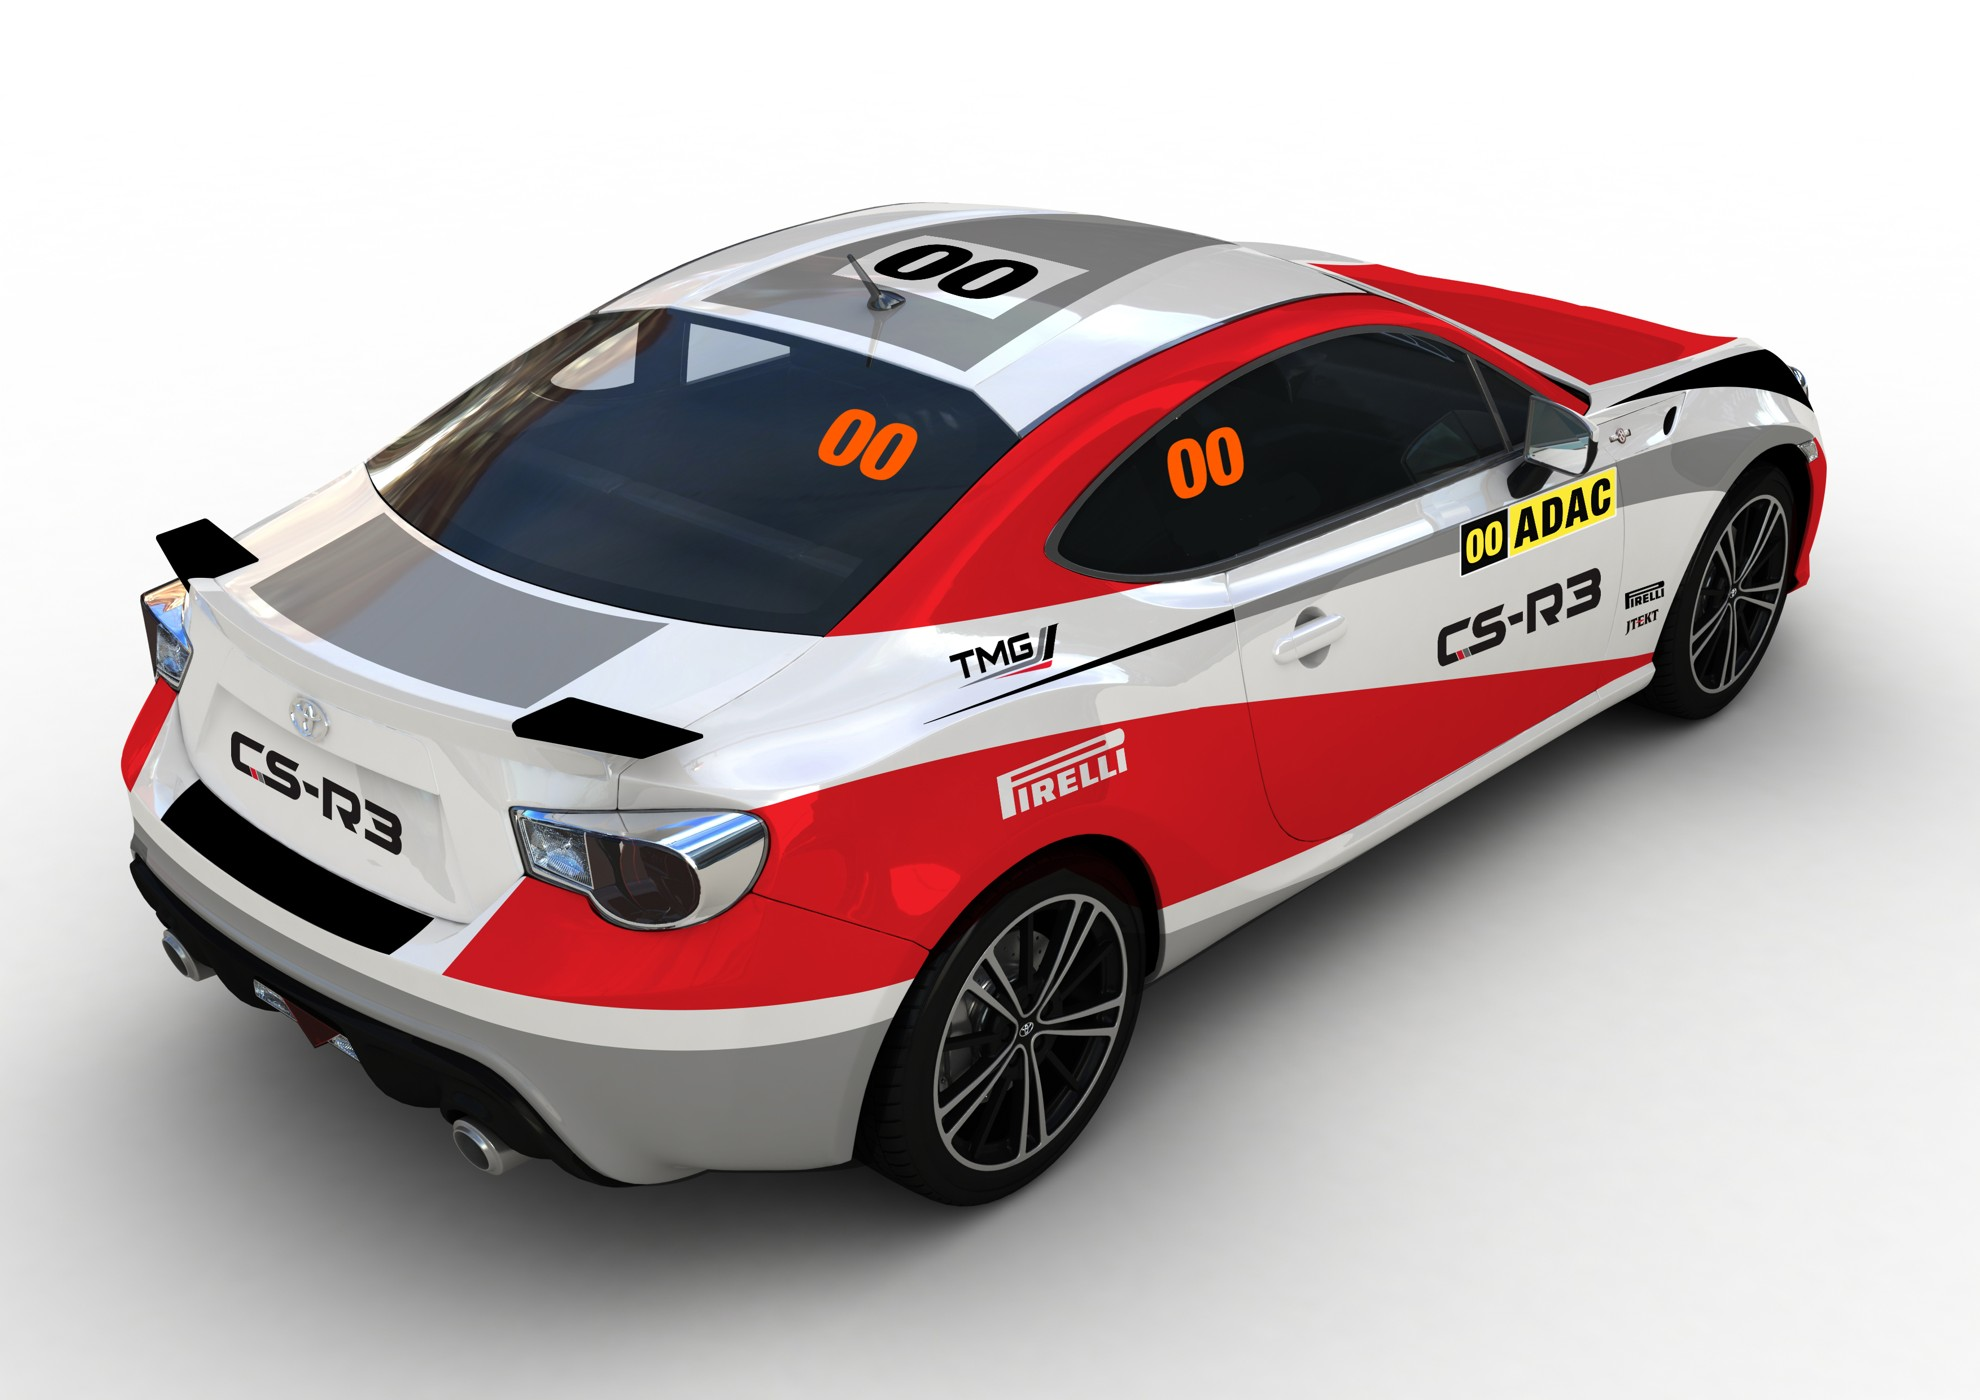 FIA_World_Rally_Championship-Race-Car